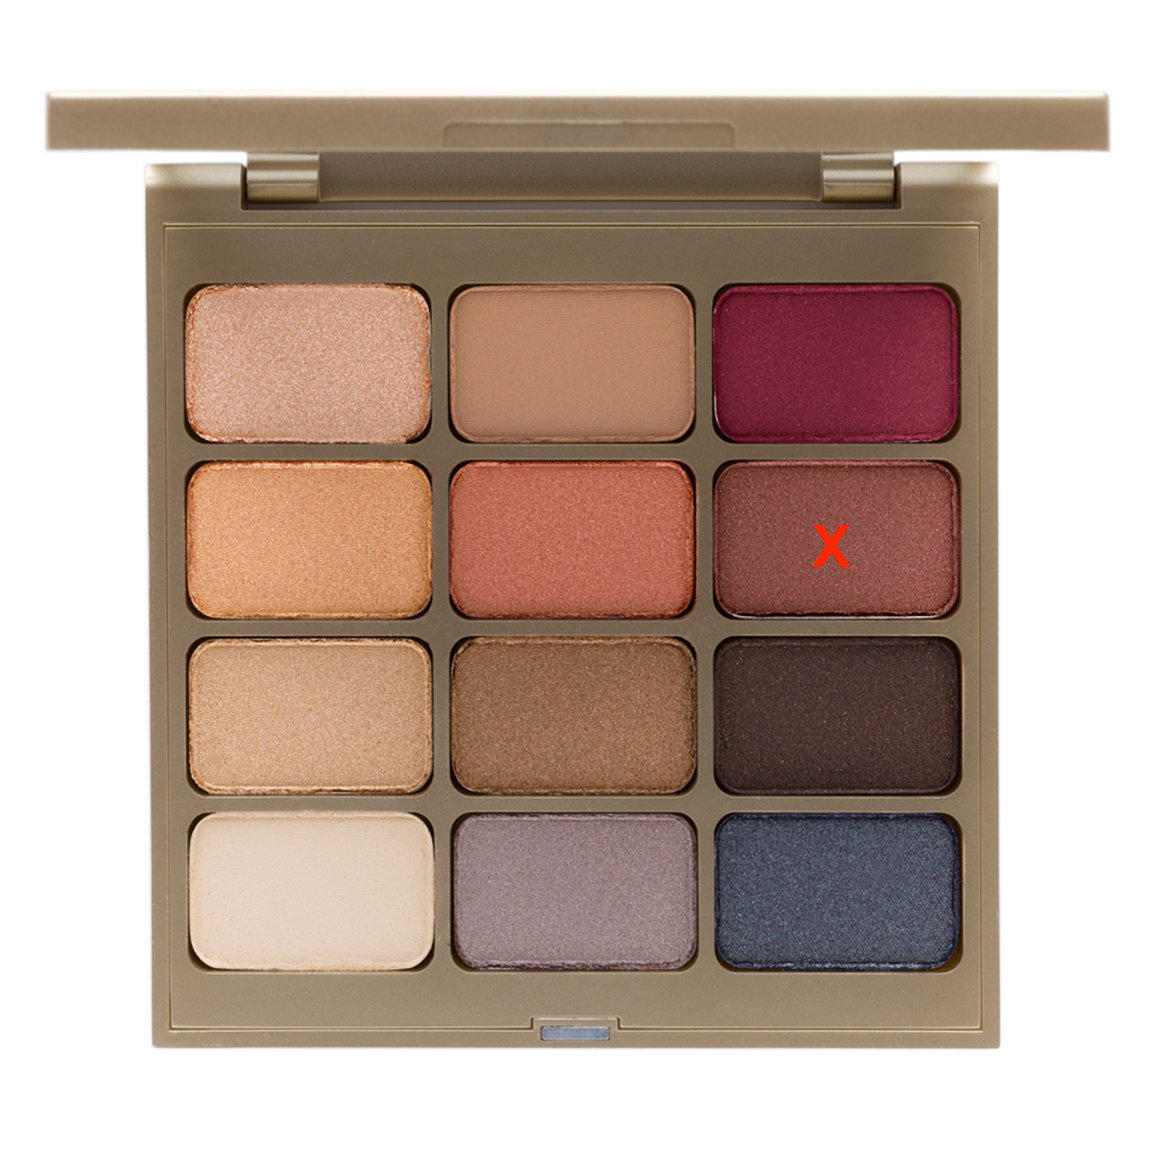 Stila Eyes Are The Window Eyeshadow Palette Spirit (without barefoot)